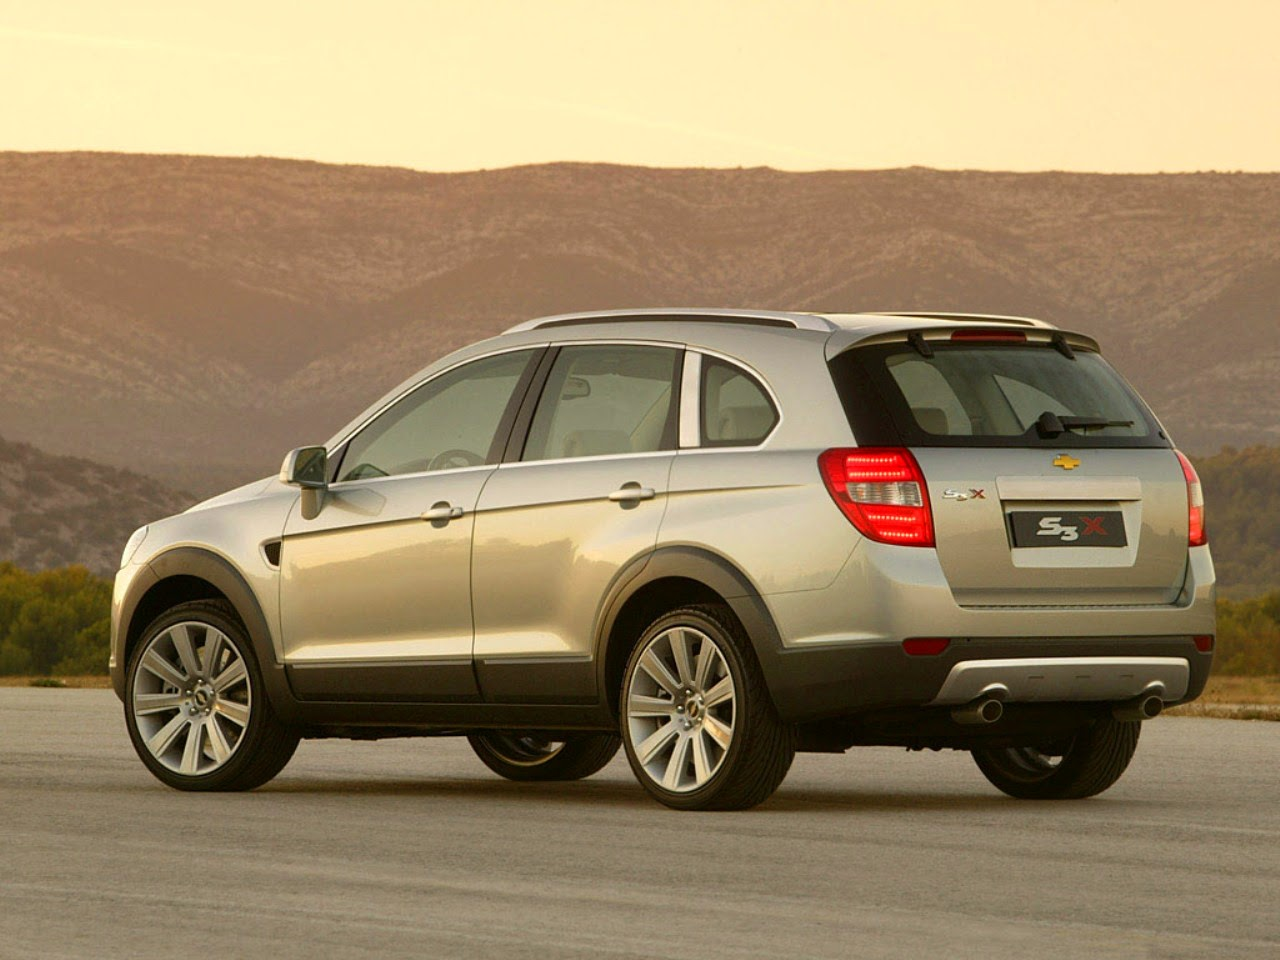 2014 Chevrolet Captiva Car Pictures | 2017 - 2018 Cars News on chevrolet nexia, chevrolet acadia, chevrolet logo, chevrolet optra, chevrolet celta, chevrolet parts, chevrolet sedan, chevrolet agile, chevrolet orlando, chevrolet avalanche, chevrolet trax, chevrolet sonic, chevrolet kalos, chevrolet epica, chevrolet corsa, chevrolet niva, chevrolet mexico, chevrolet spin, chevrolet lacetti, chevrolet prizm lsi,